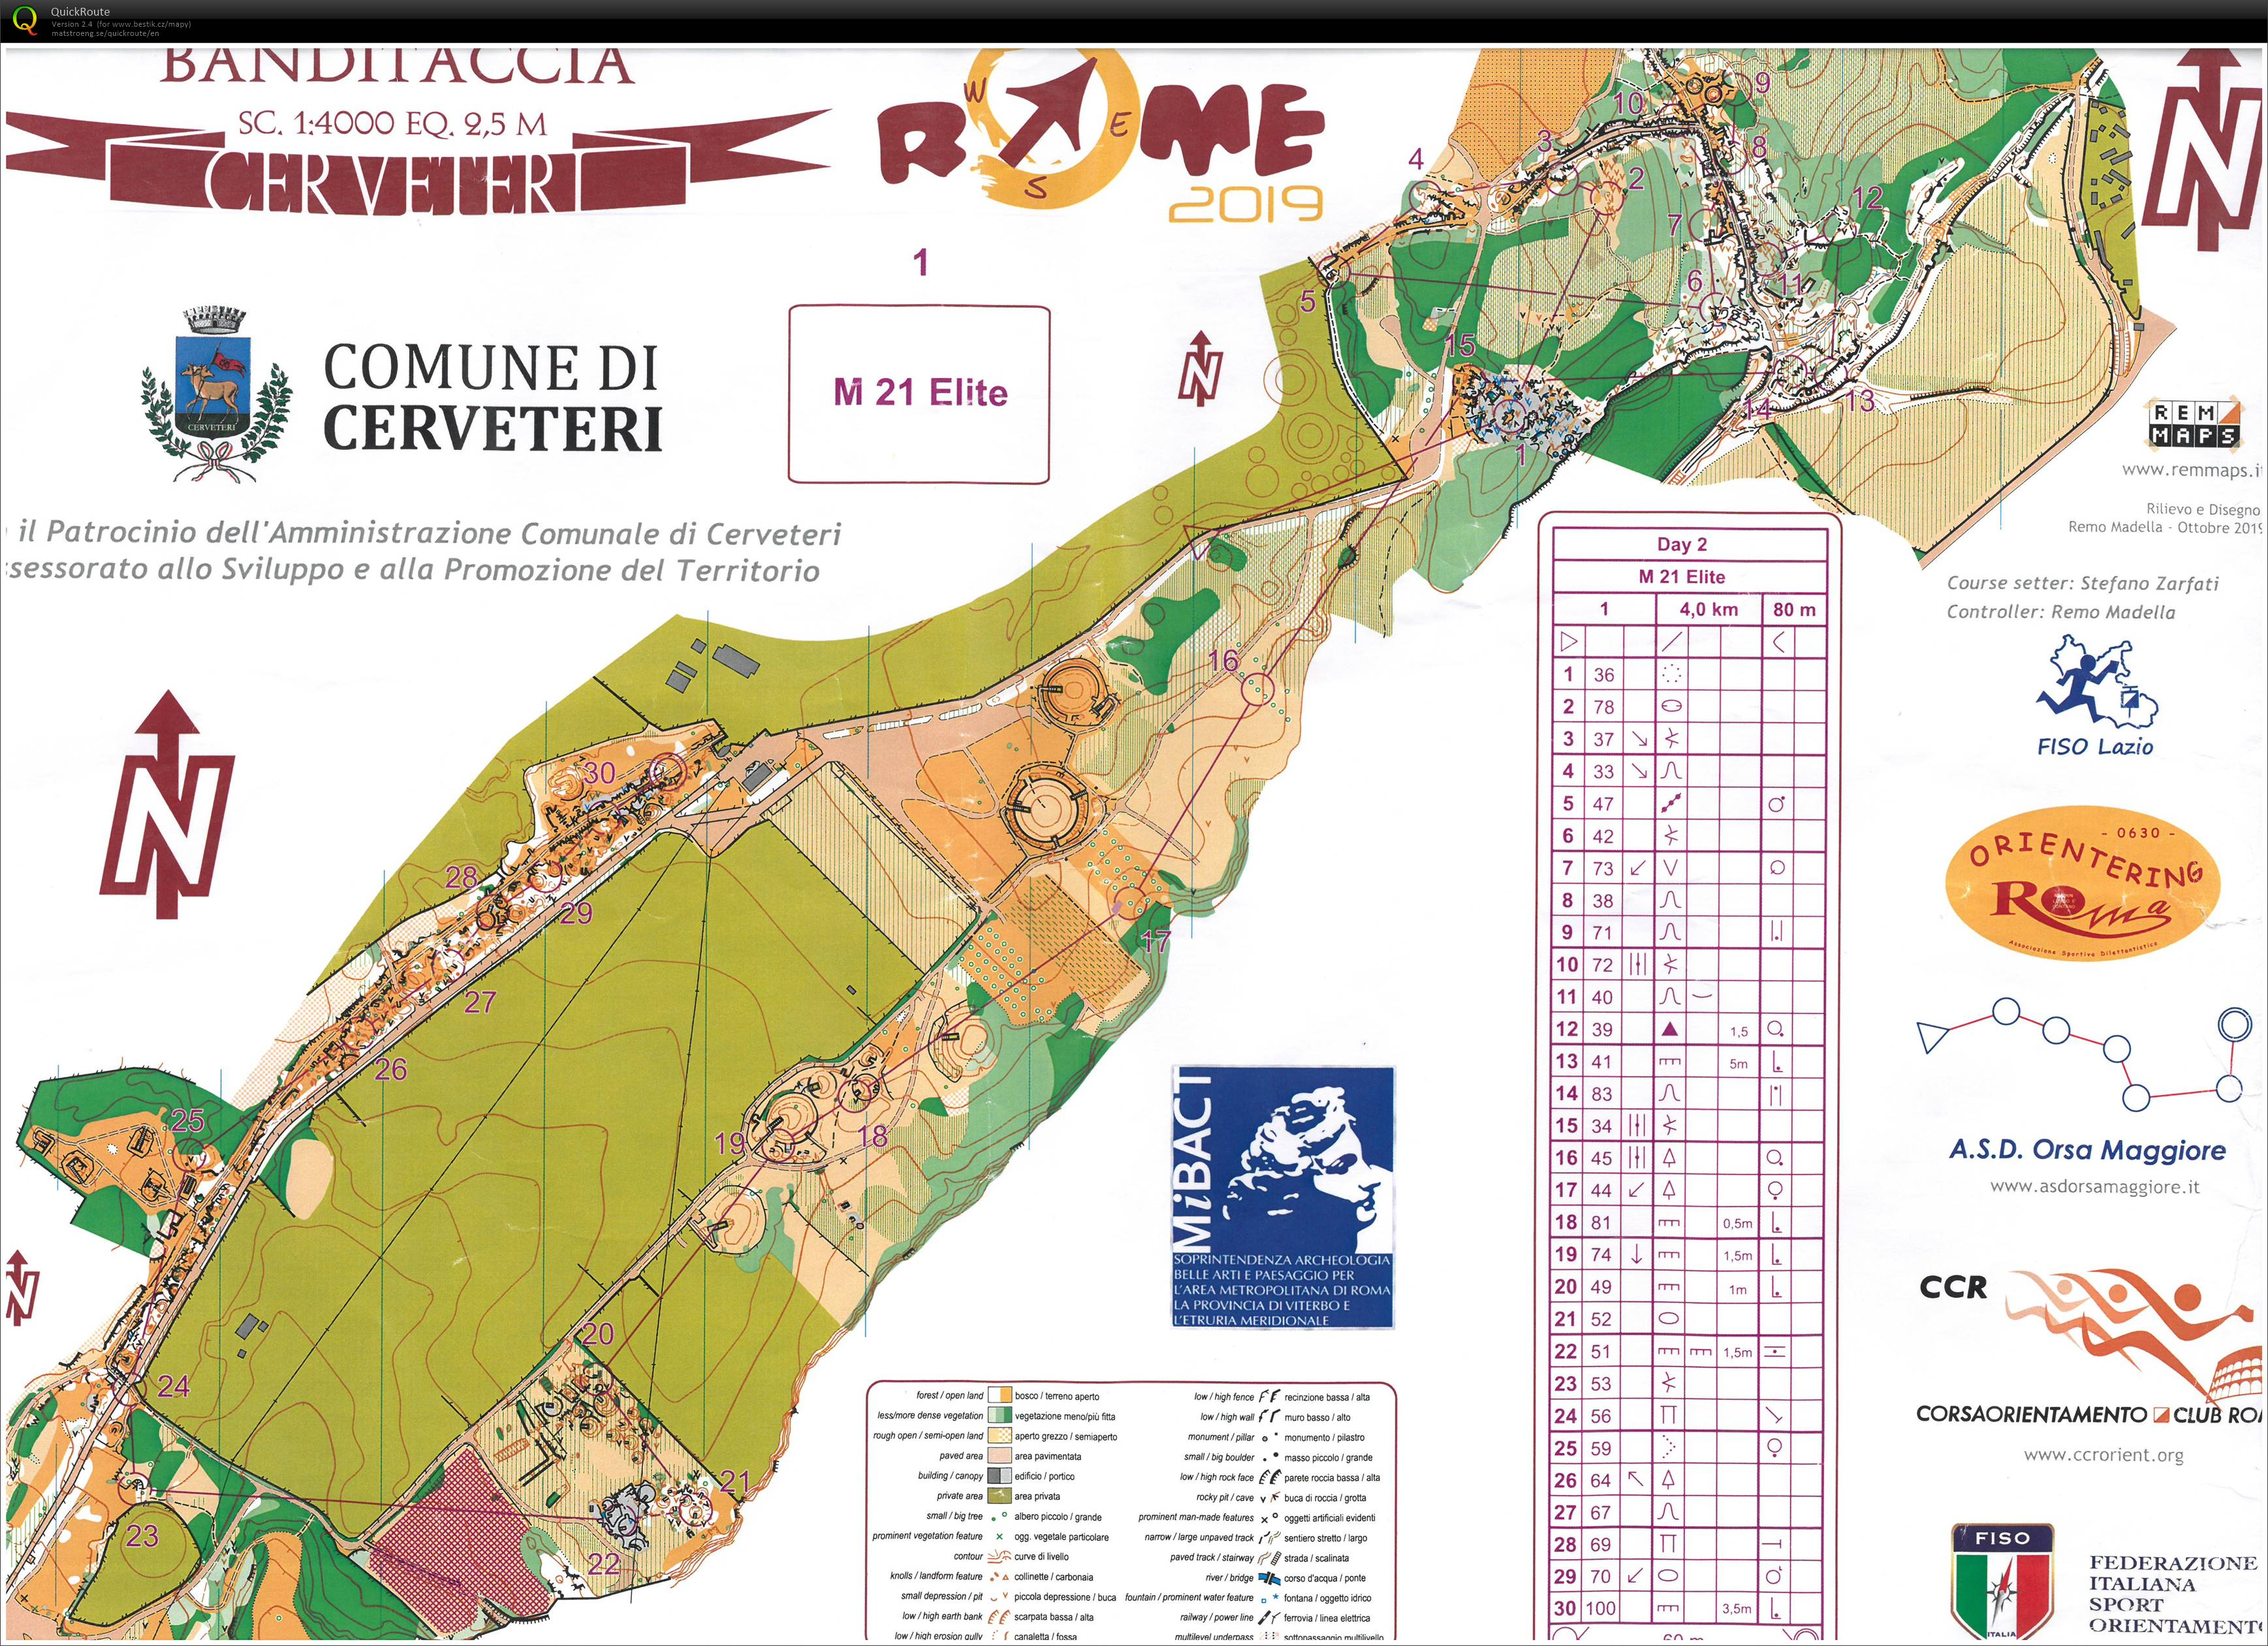 Rome Orienteering Meeting, E2 (02.11.2019)